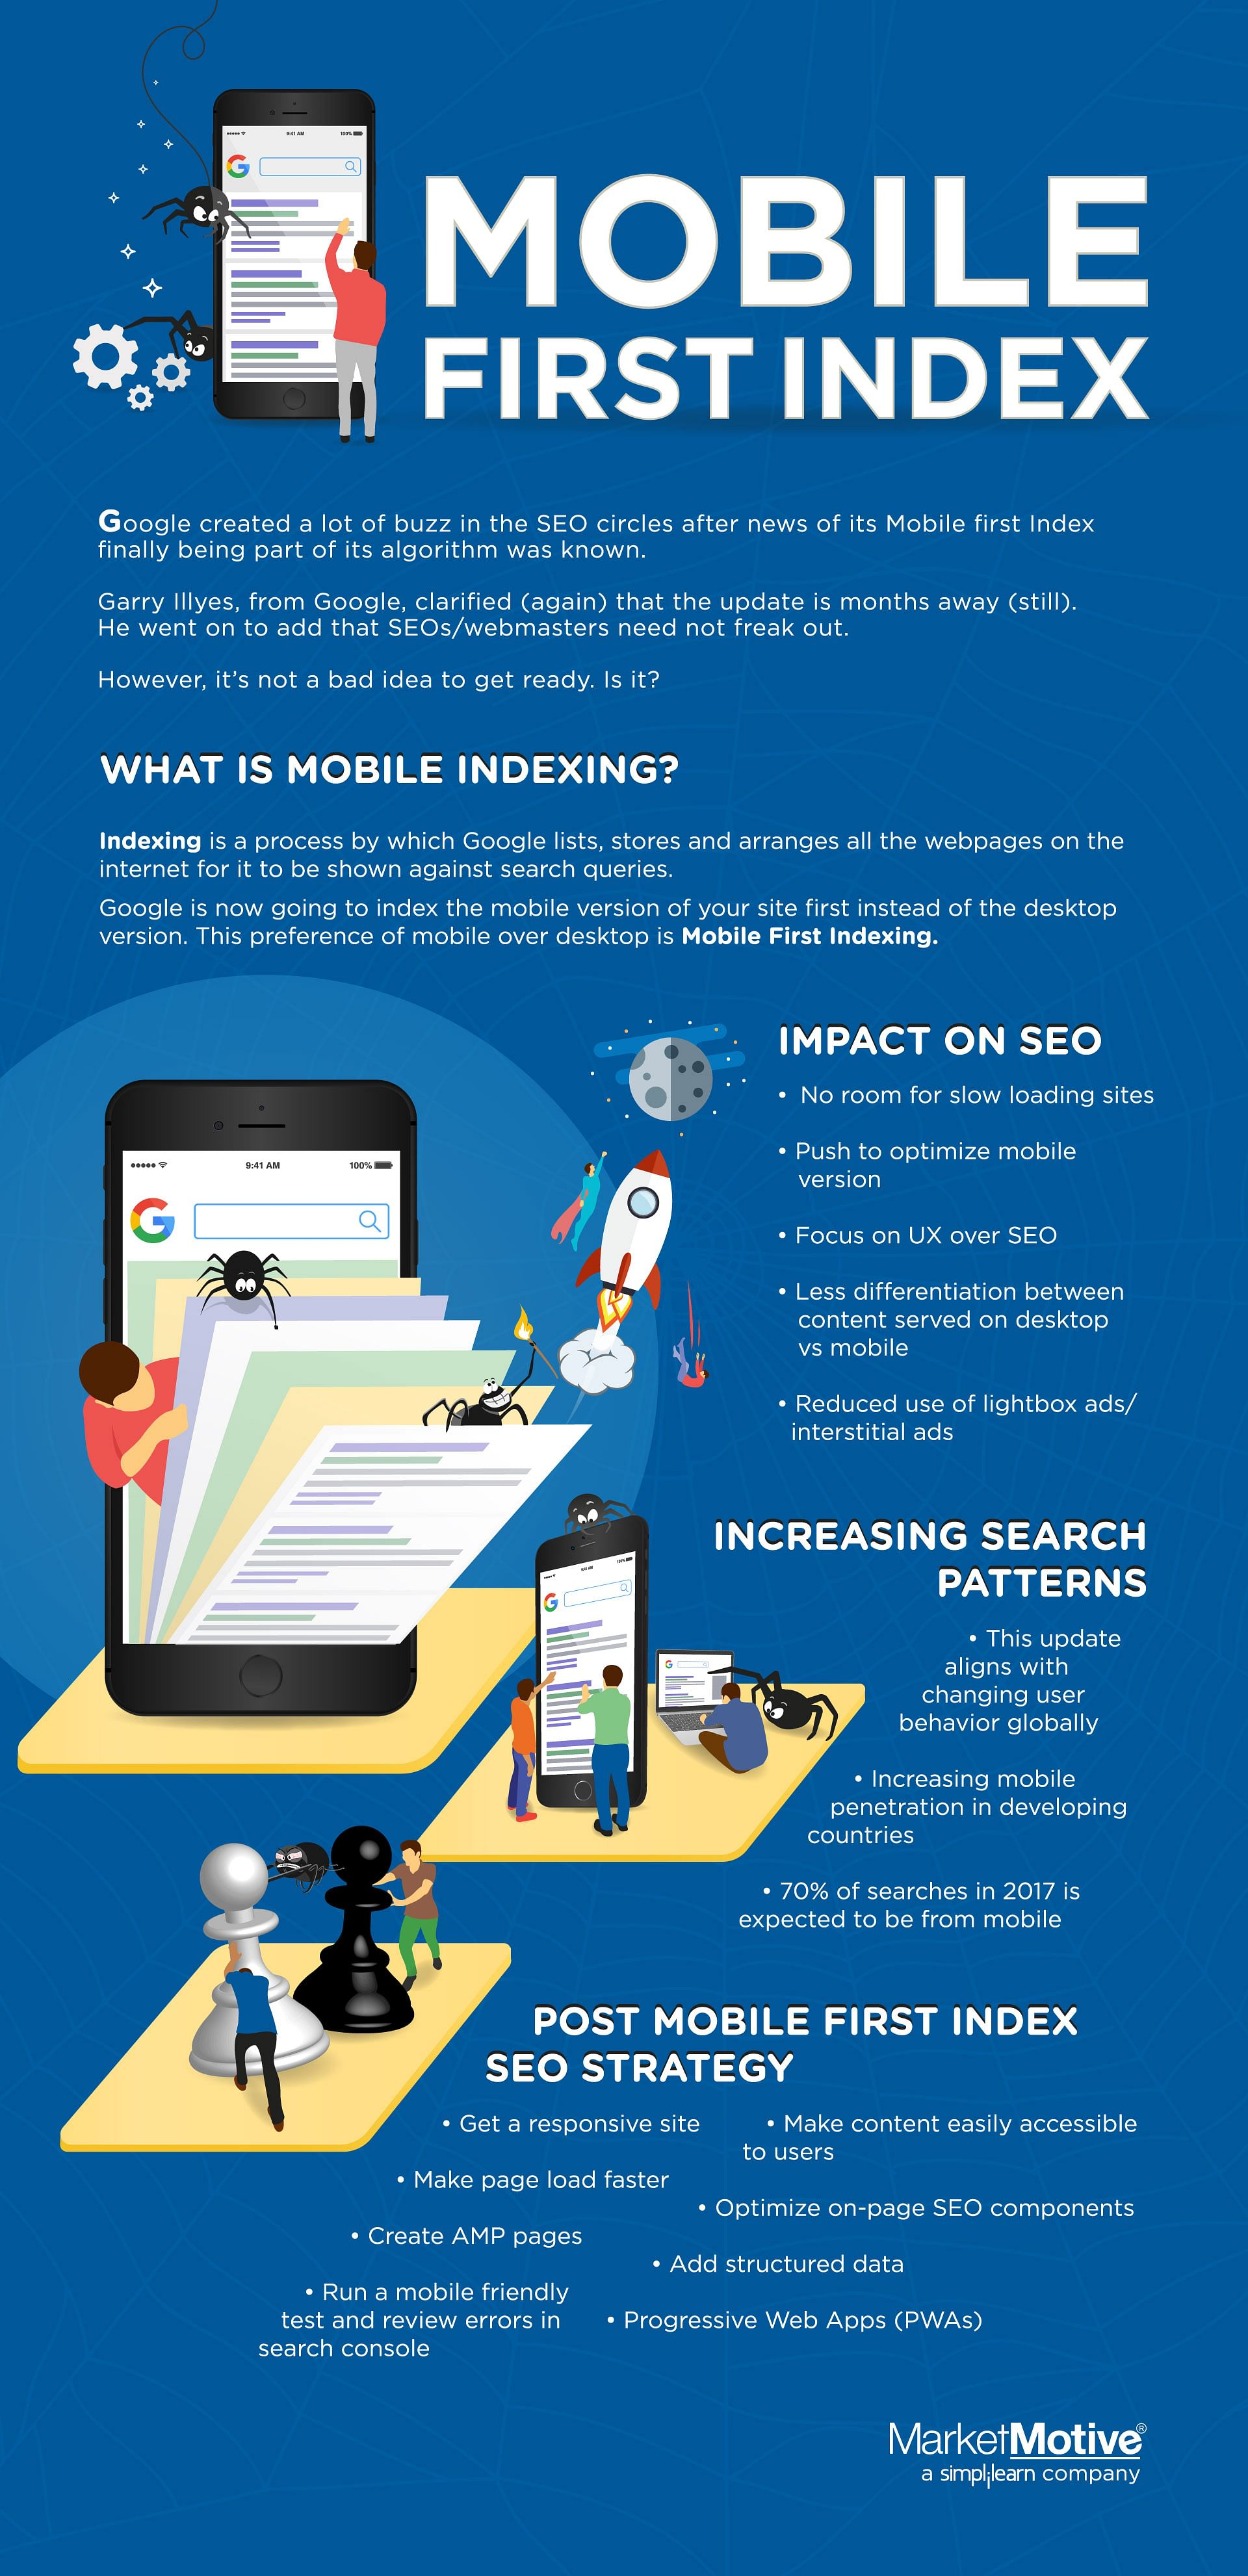 mobile-first-index-infographic